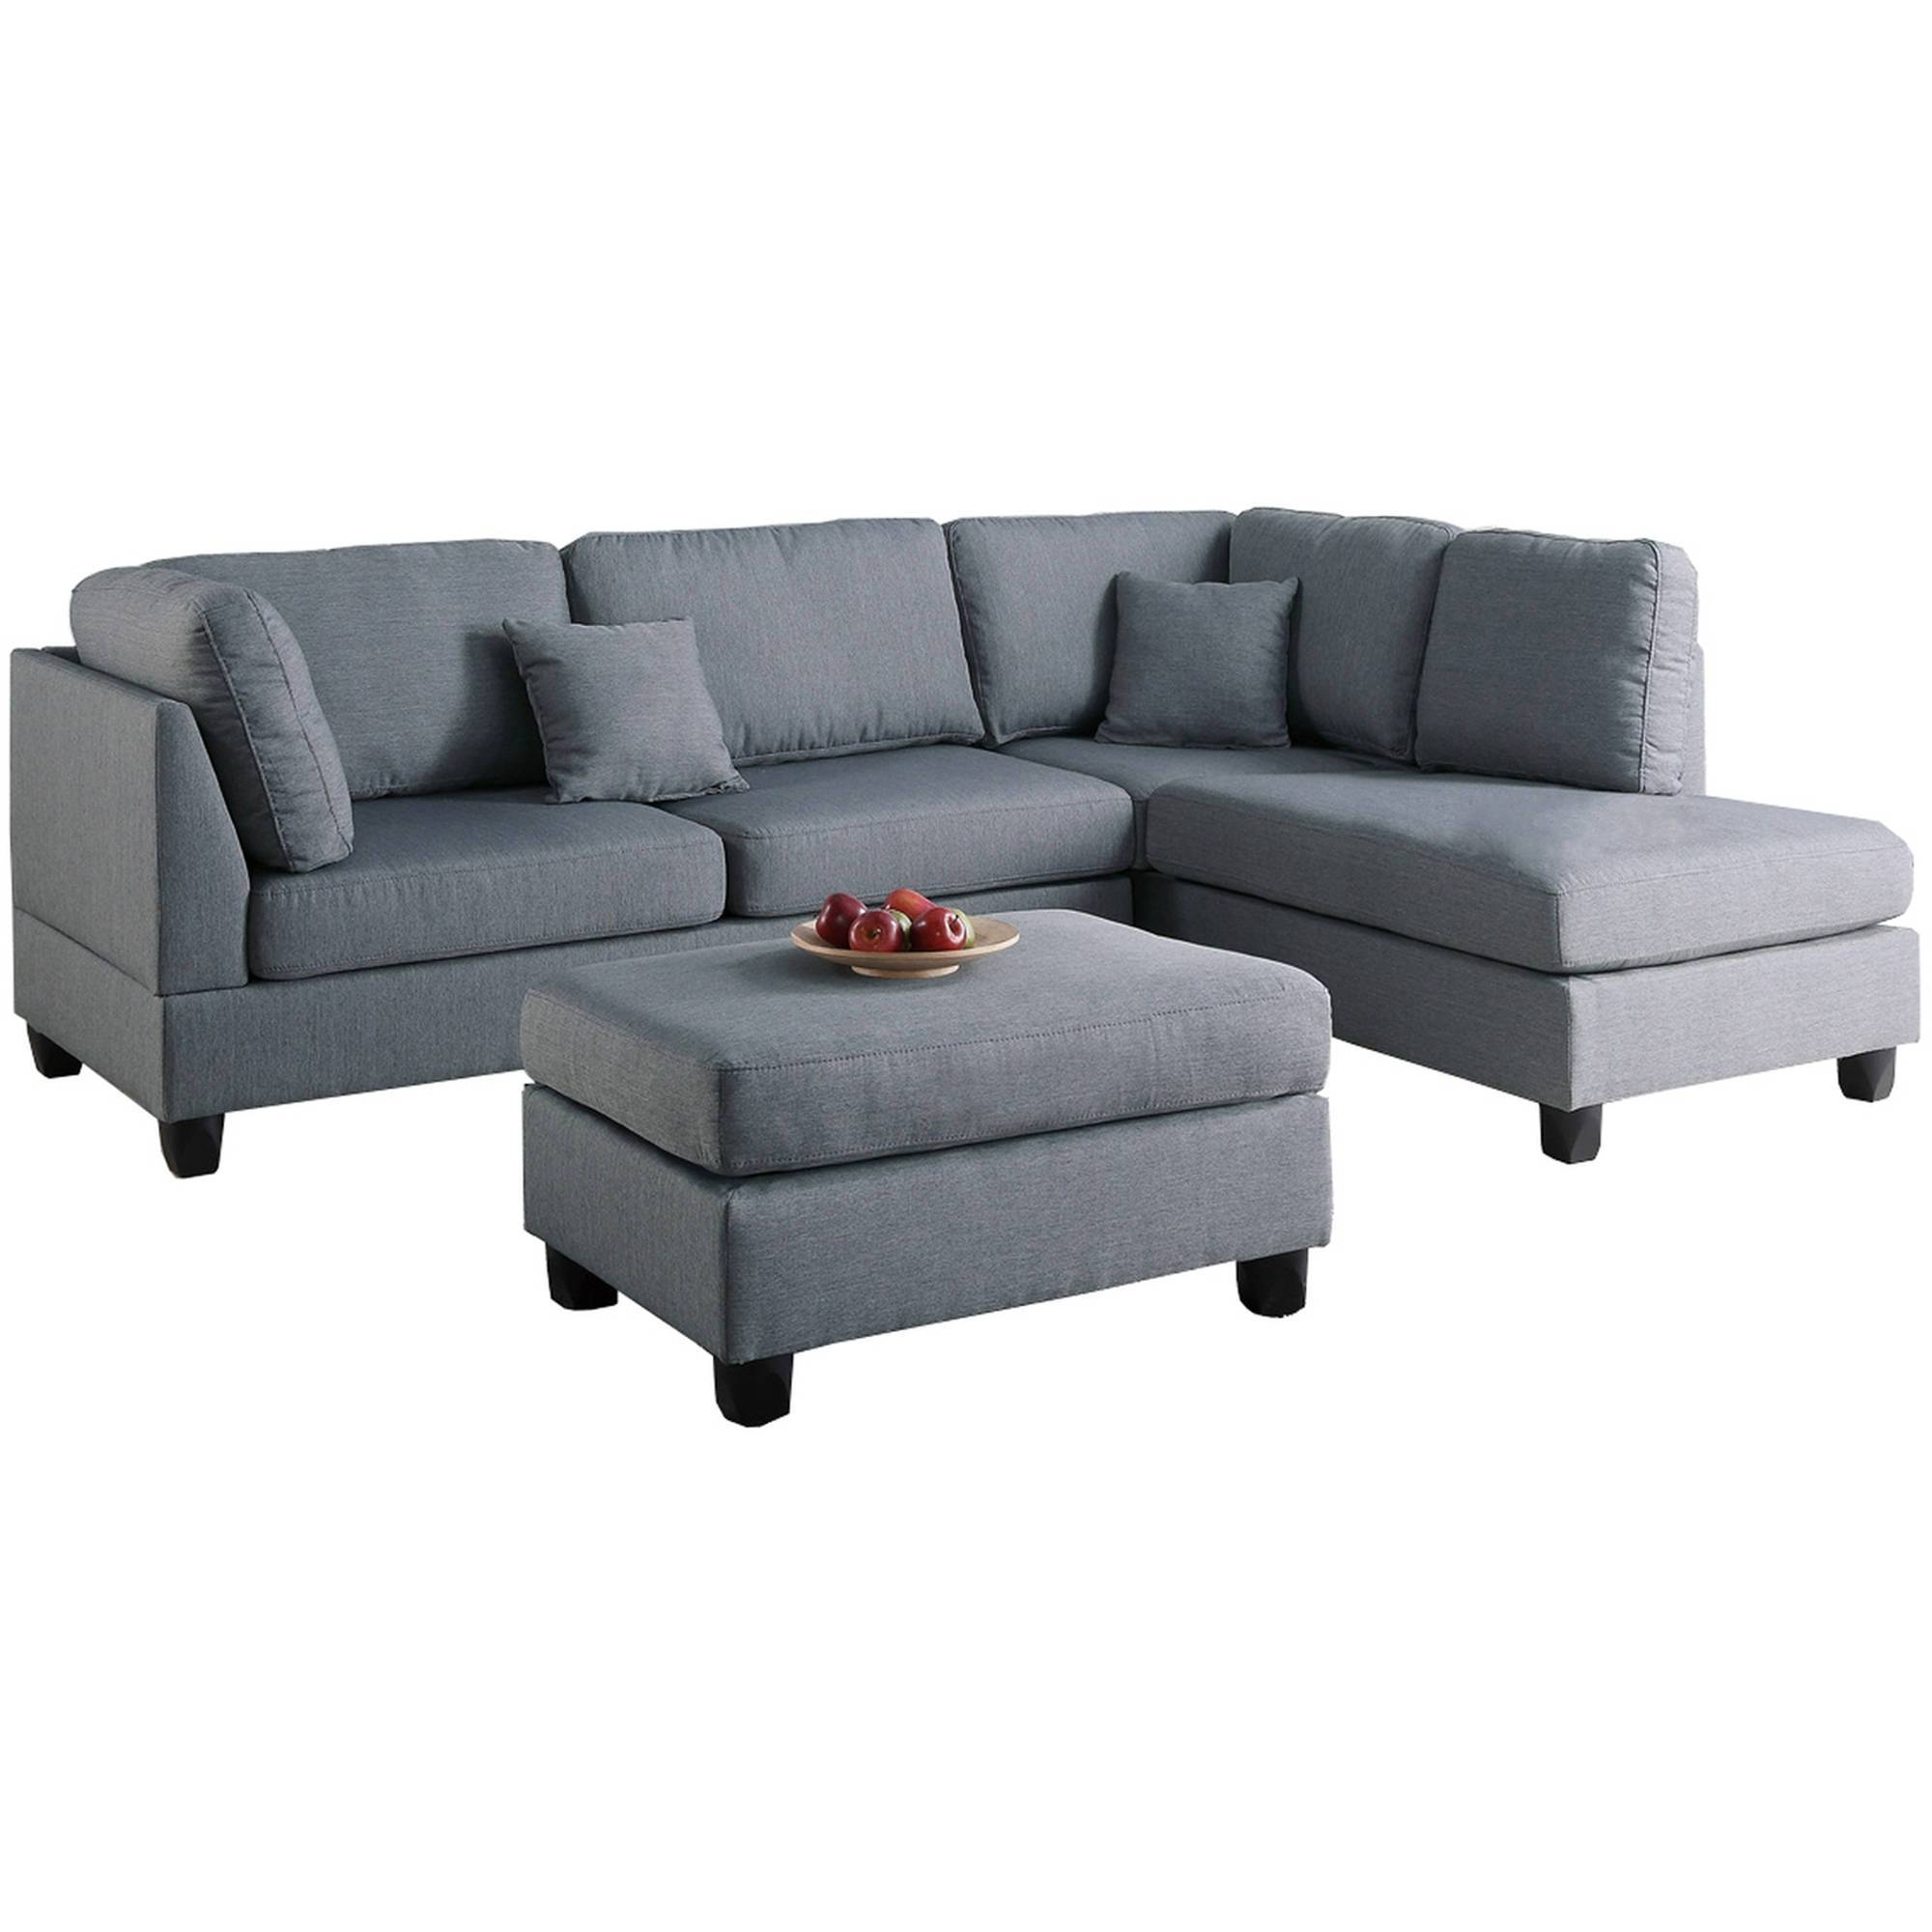 Living Room Furniture | Walmart with regard to Big Sofas Sectionals (Image 19 of 30)